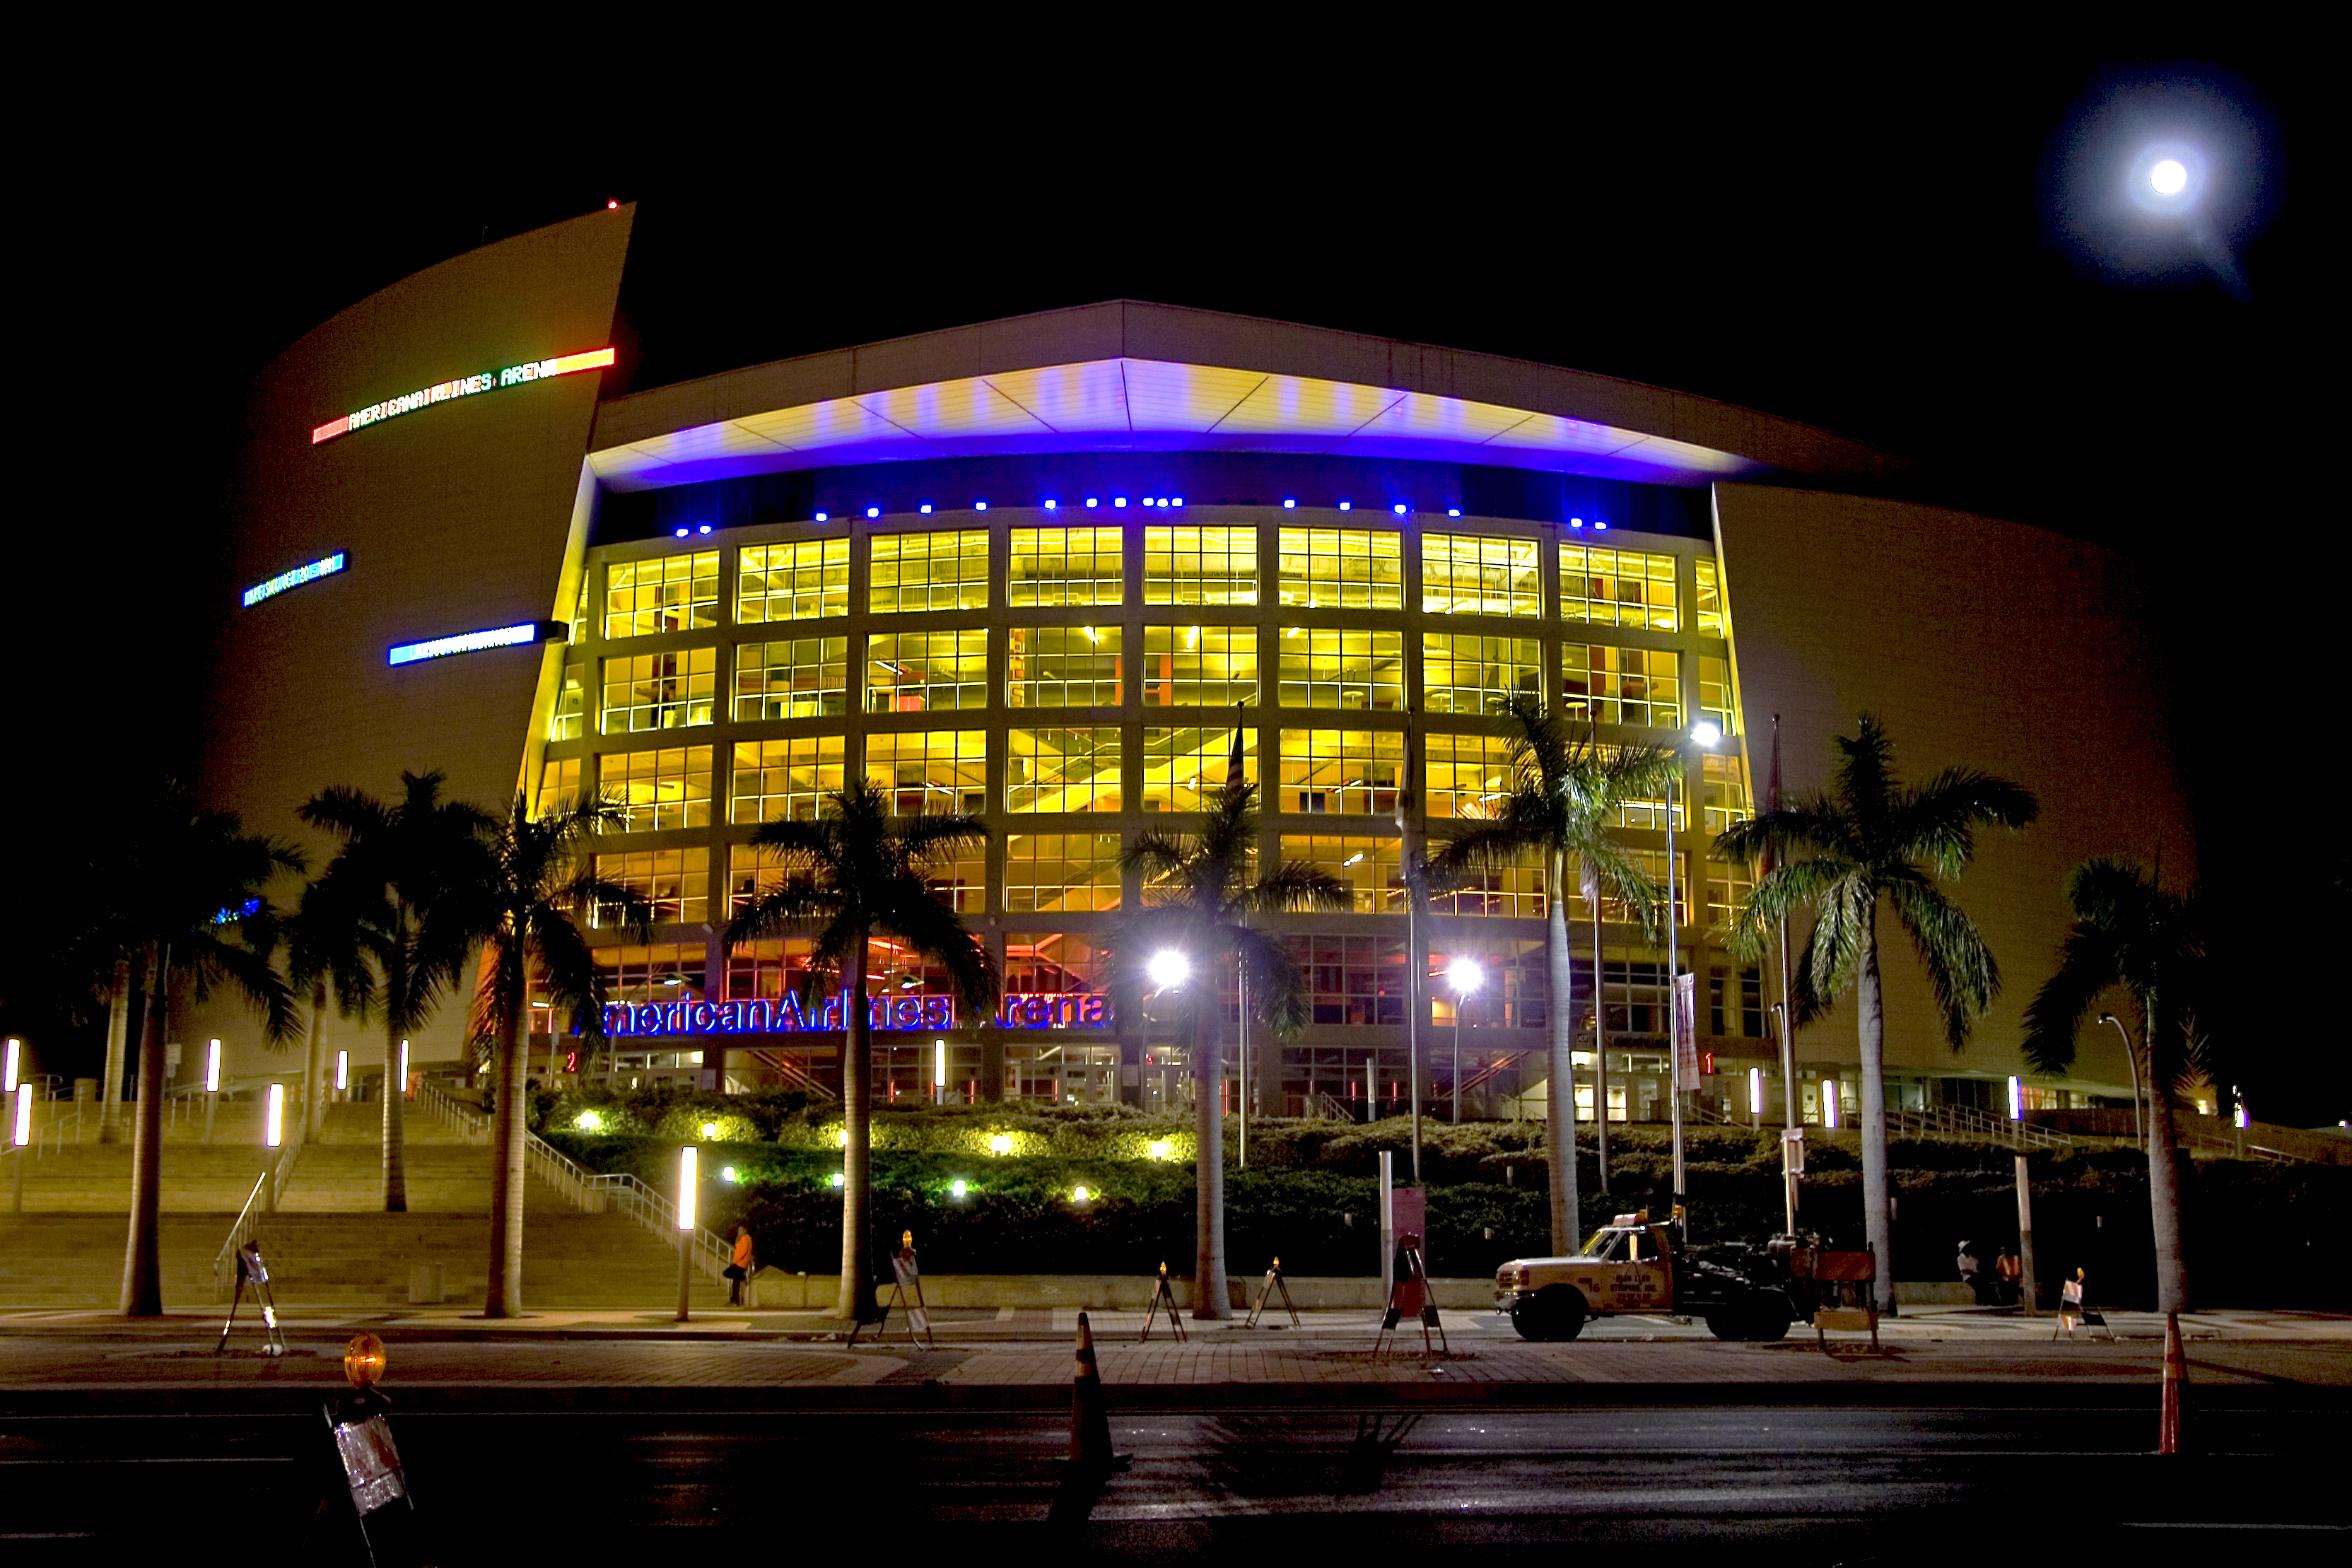 head shot of American Airlines Arena